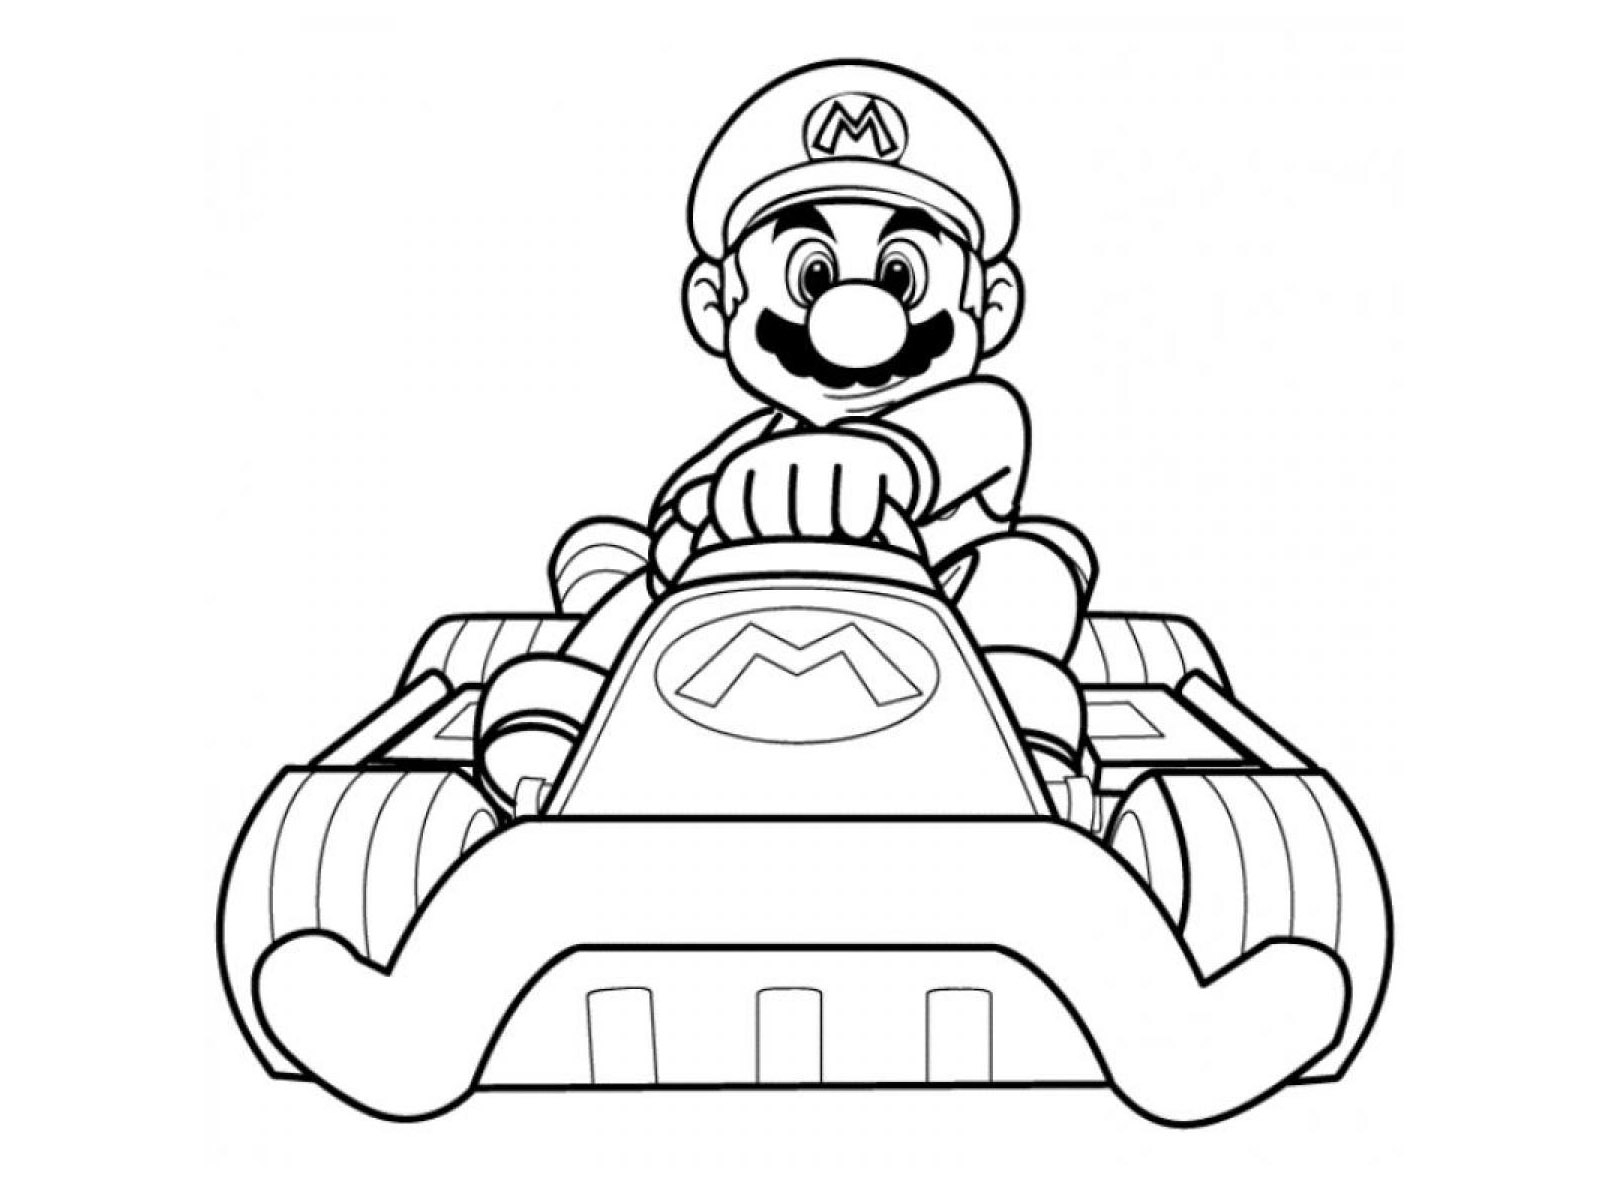 Mario Coloring Pages To Print Mario Kart Free To Color For Kids Mario Kart Kids Coloring Pages